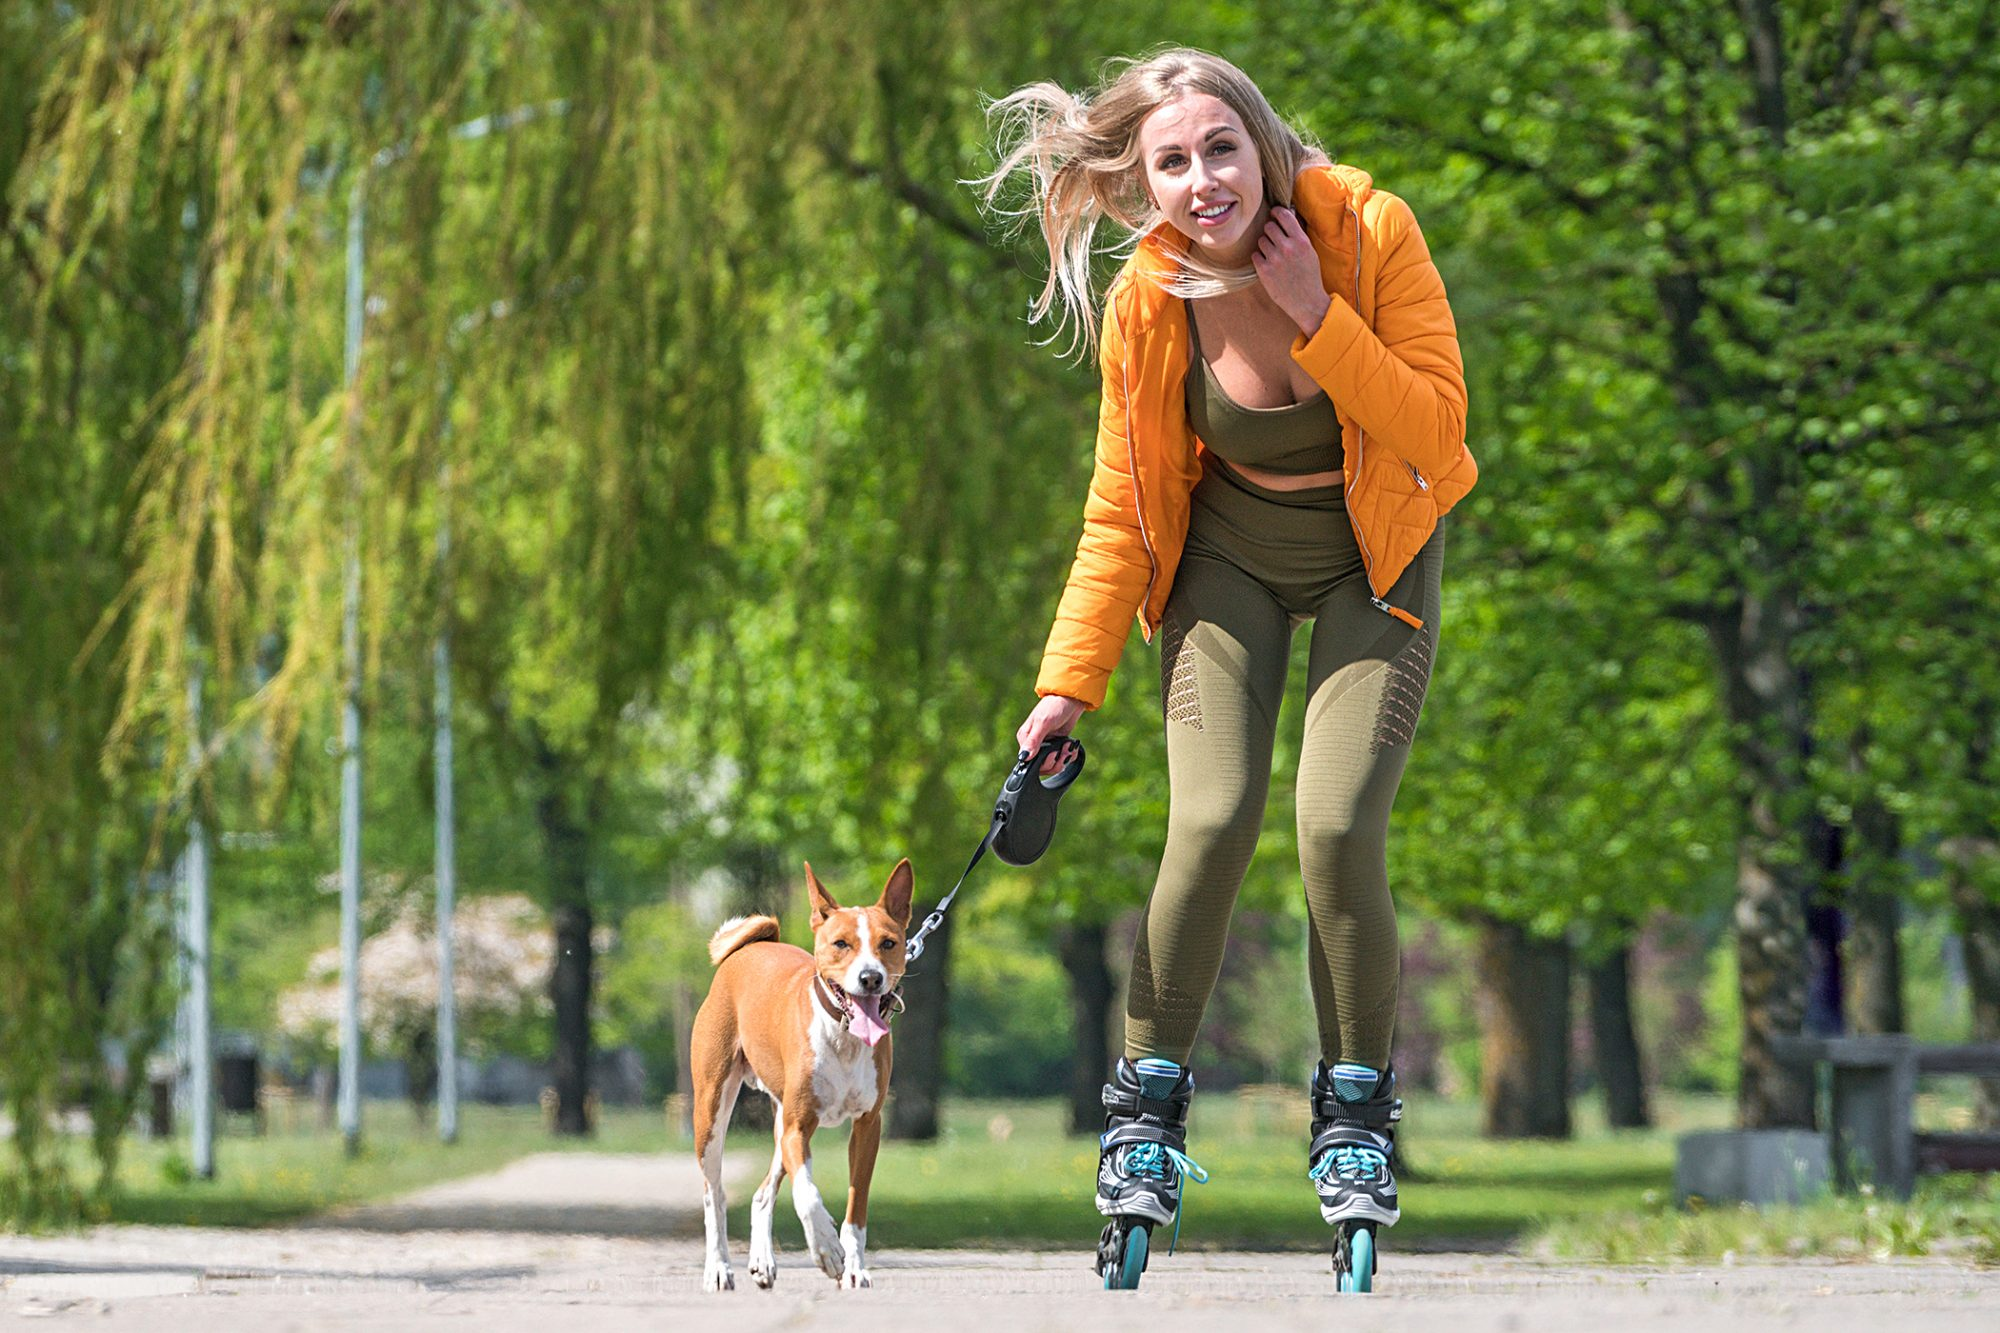 woman roller blading in a park holding basenji dog on a leash